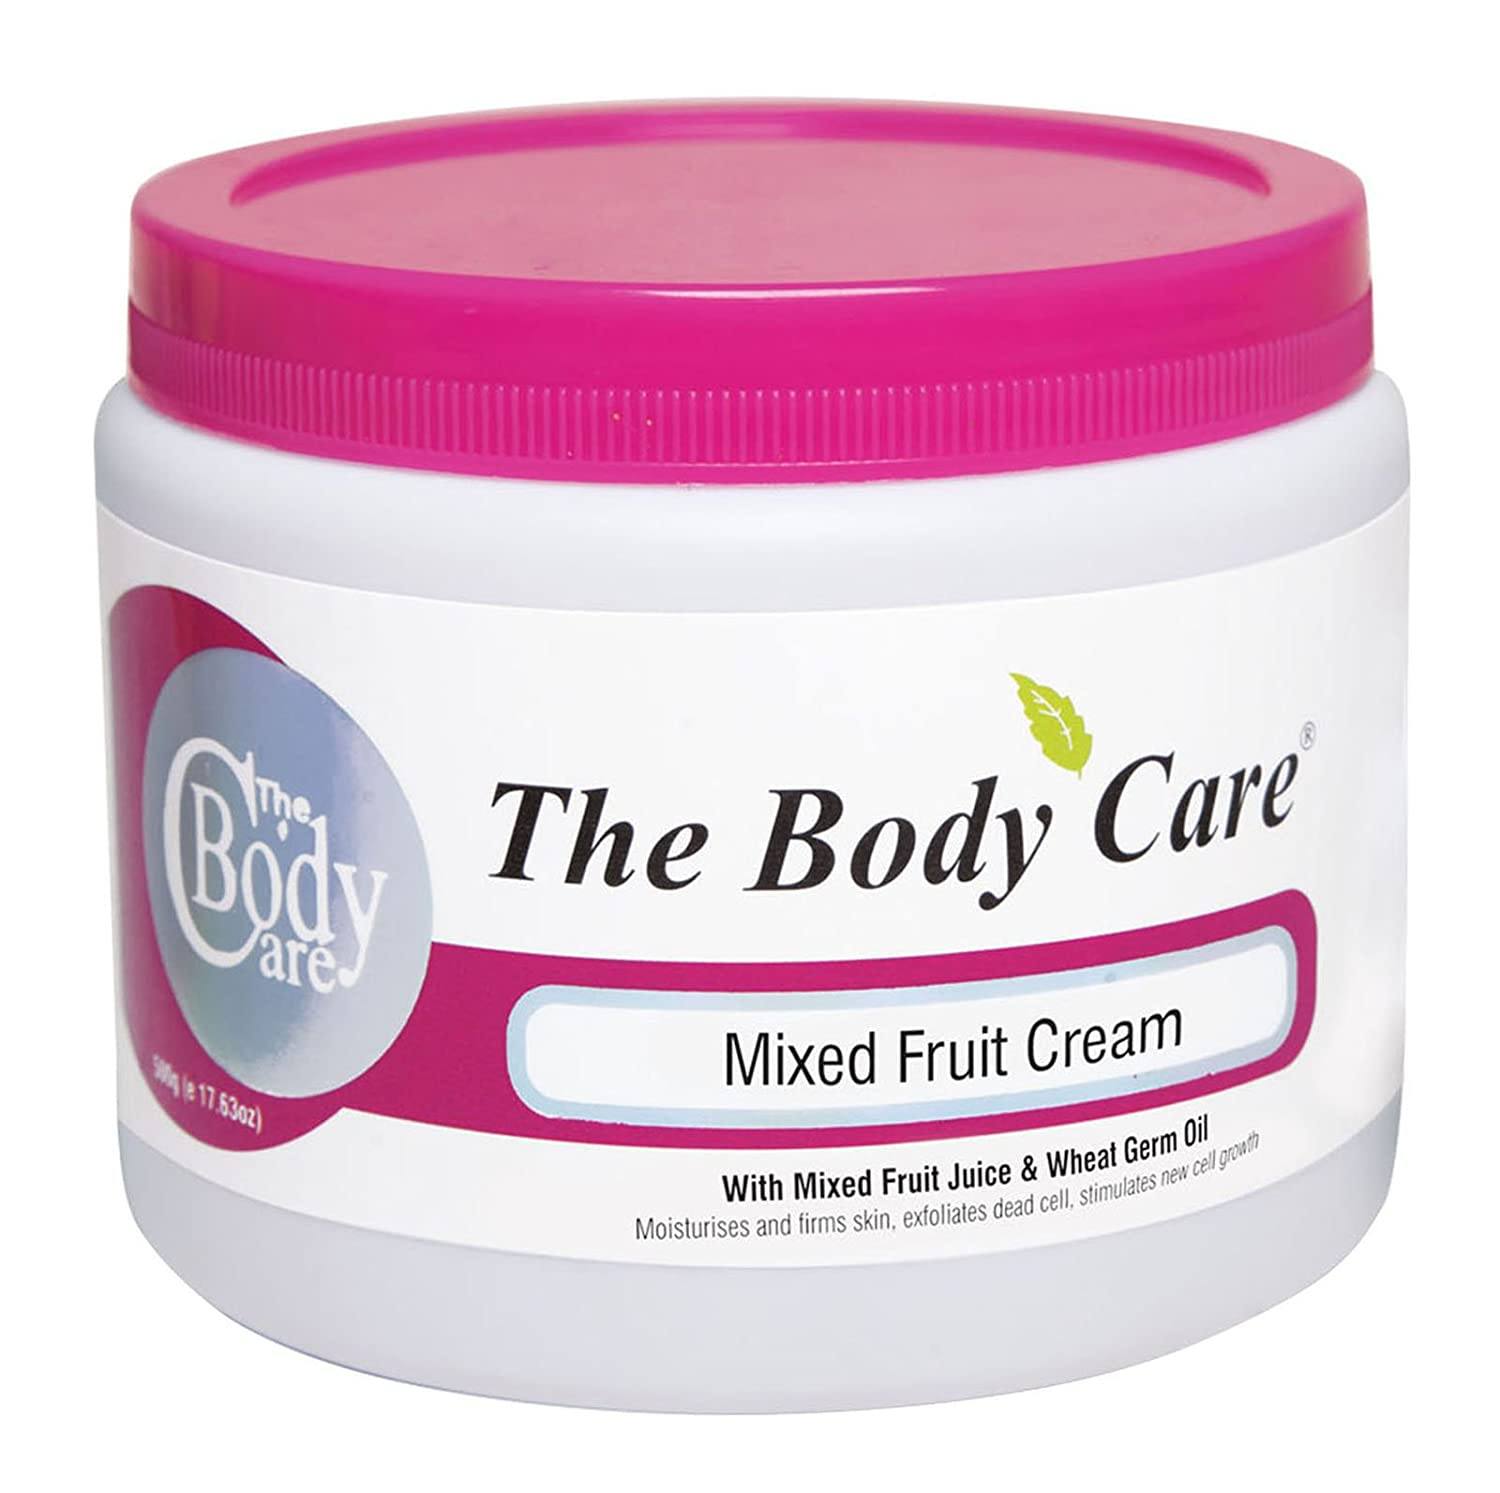 The Body Care Mixed Fruit Face Cream With Mixed Fruit Juice & Wheat Germ Oil